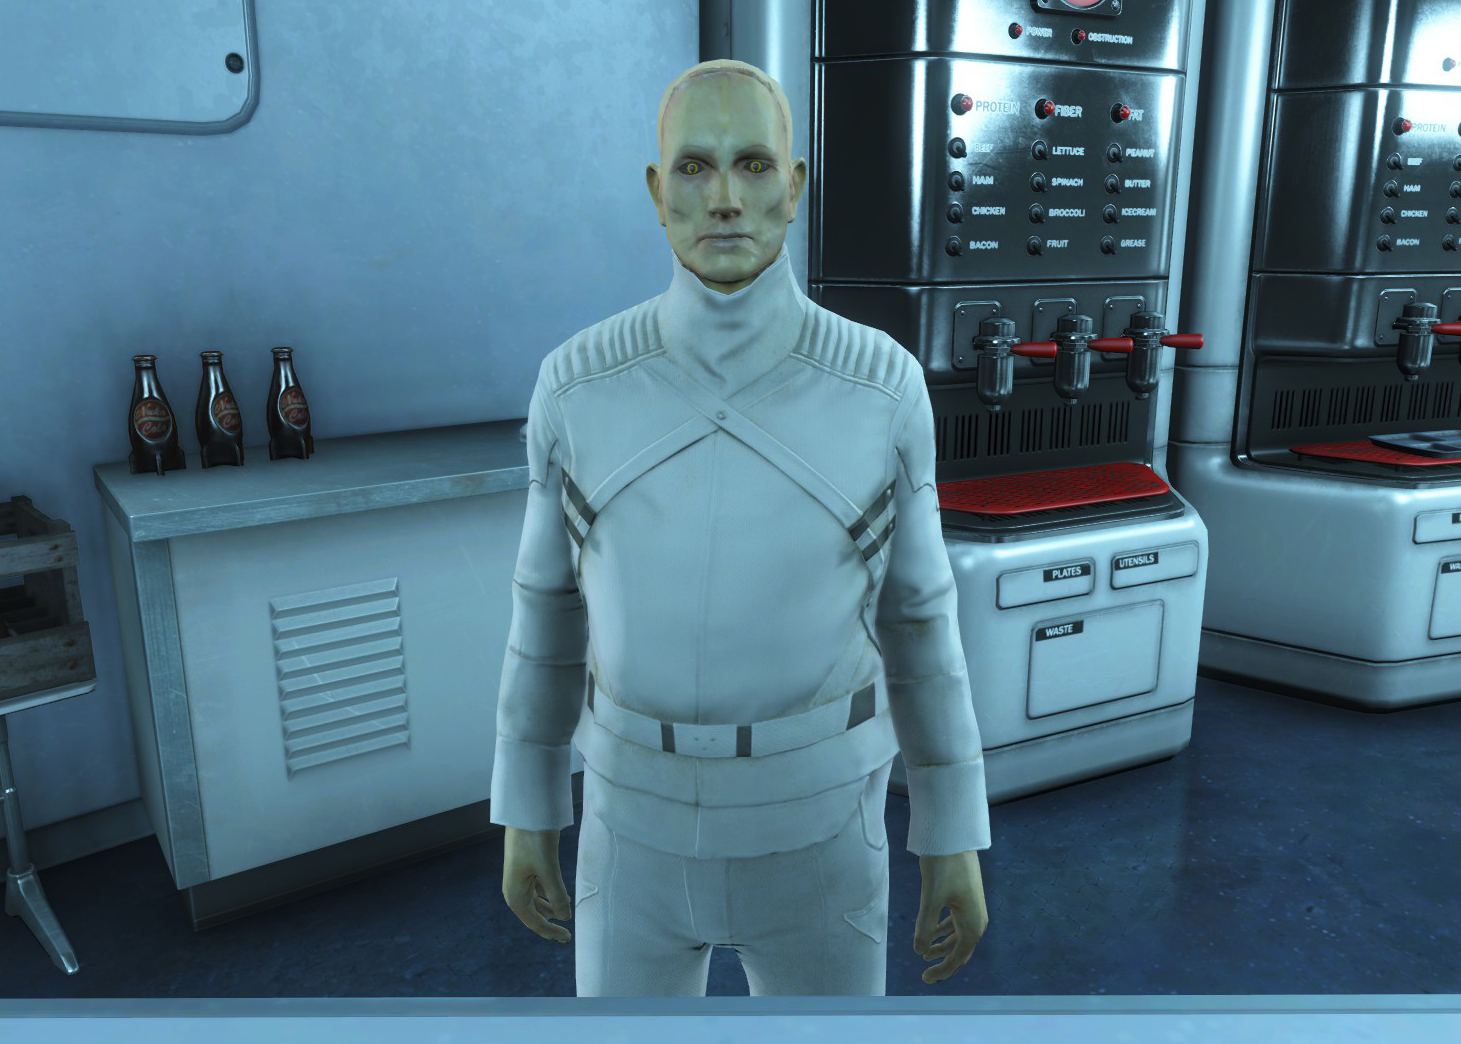 Synth cafeteria worker